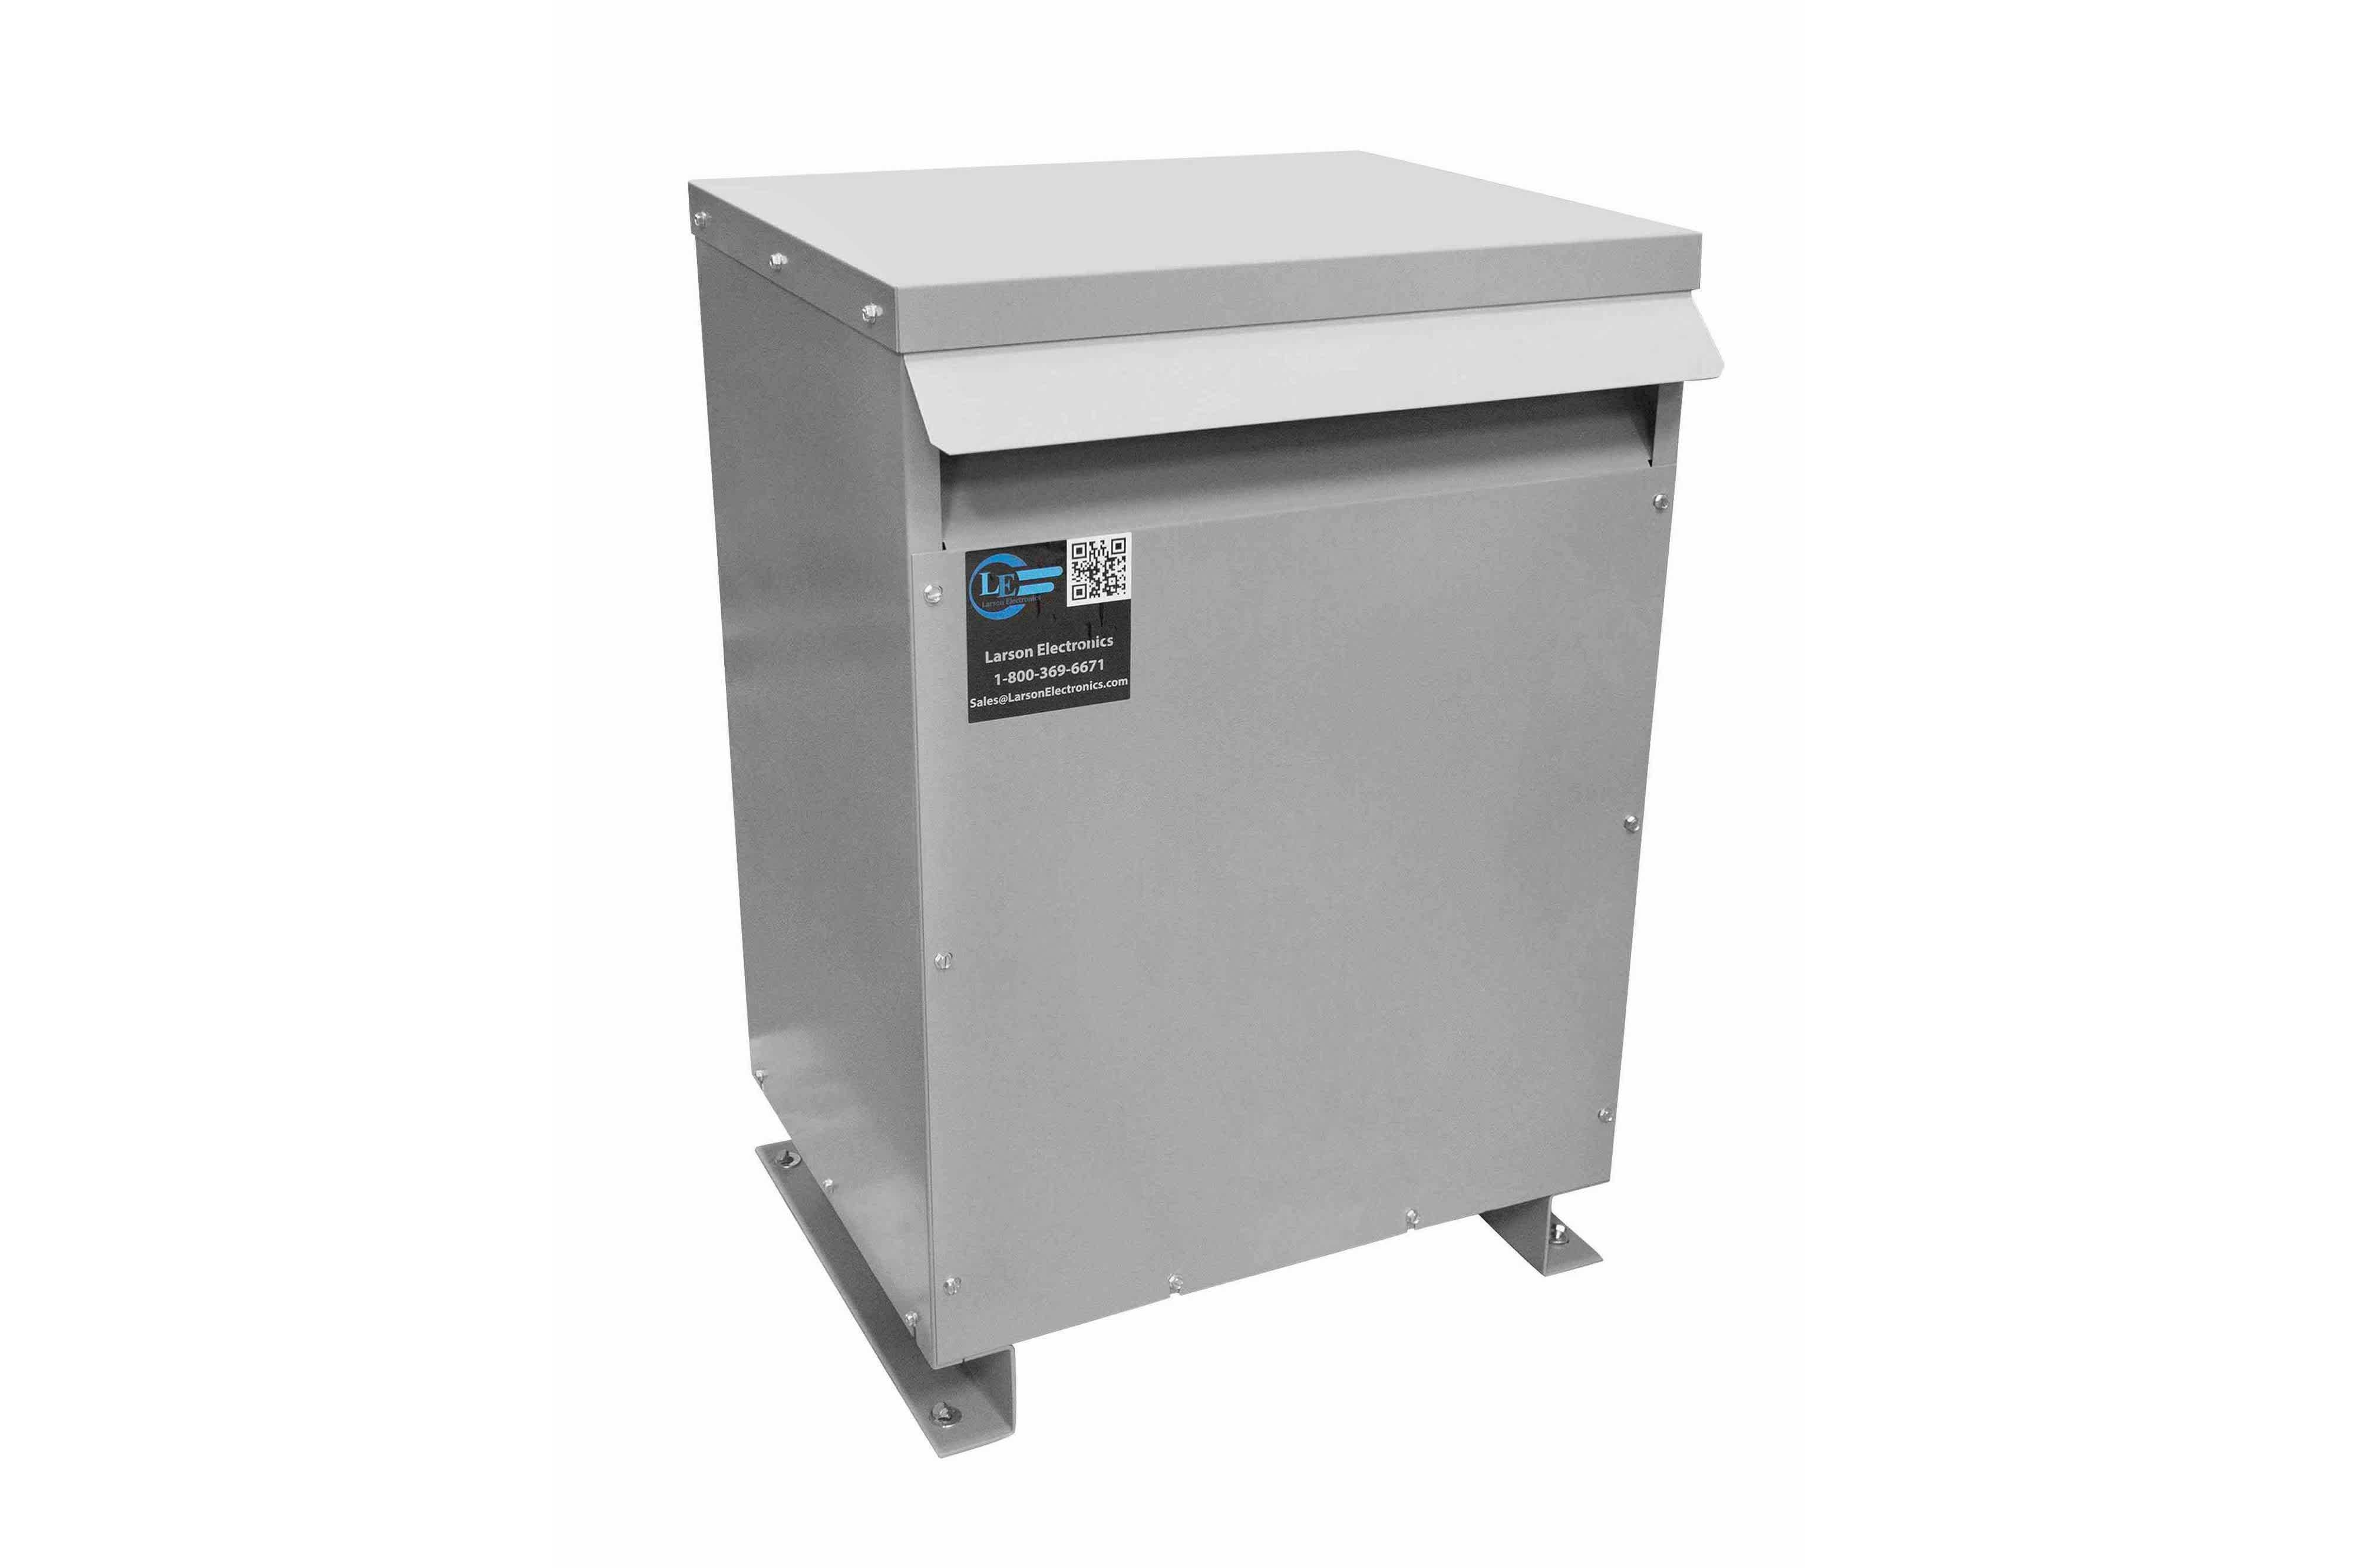 115 kVA 3PH Isolation Transformer, 600V Delta Primary, 415V Delta Secondary, N3R, Ventilated, 60 Hz